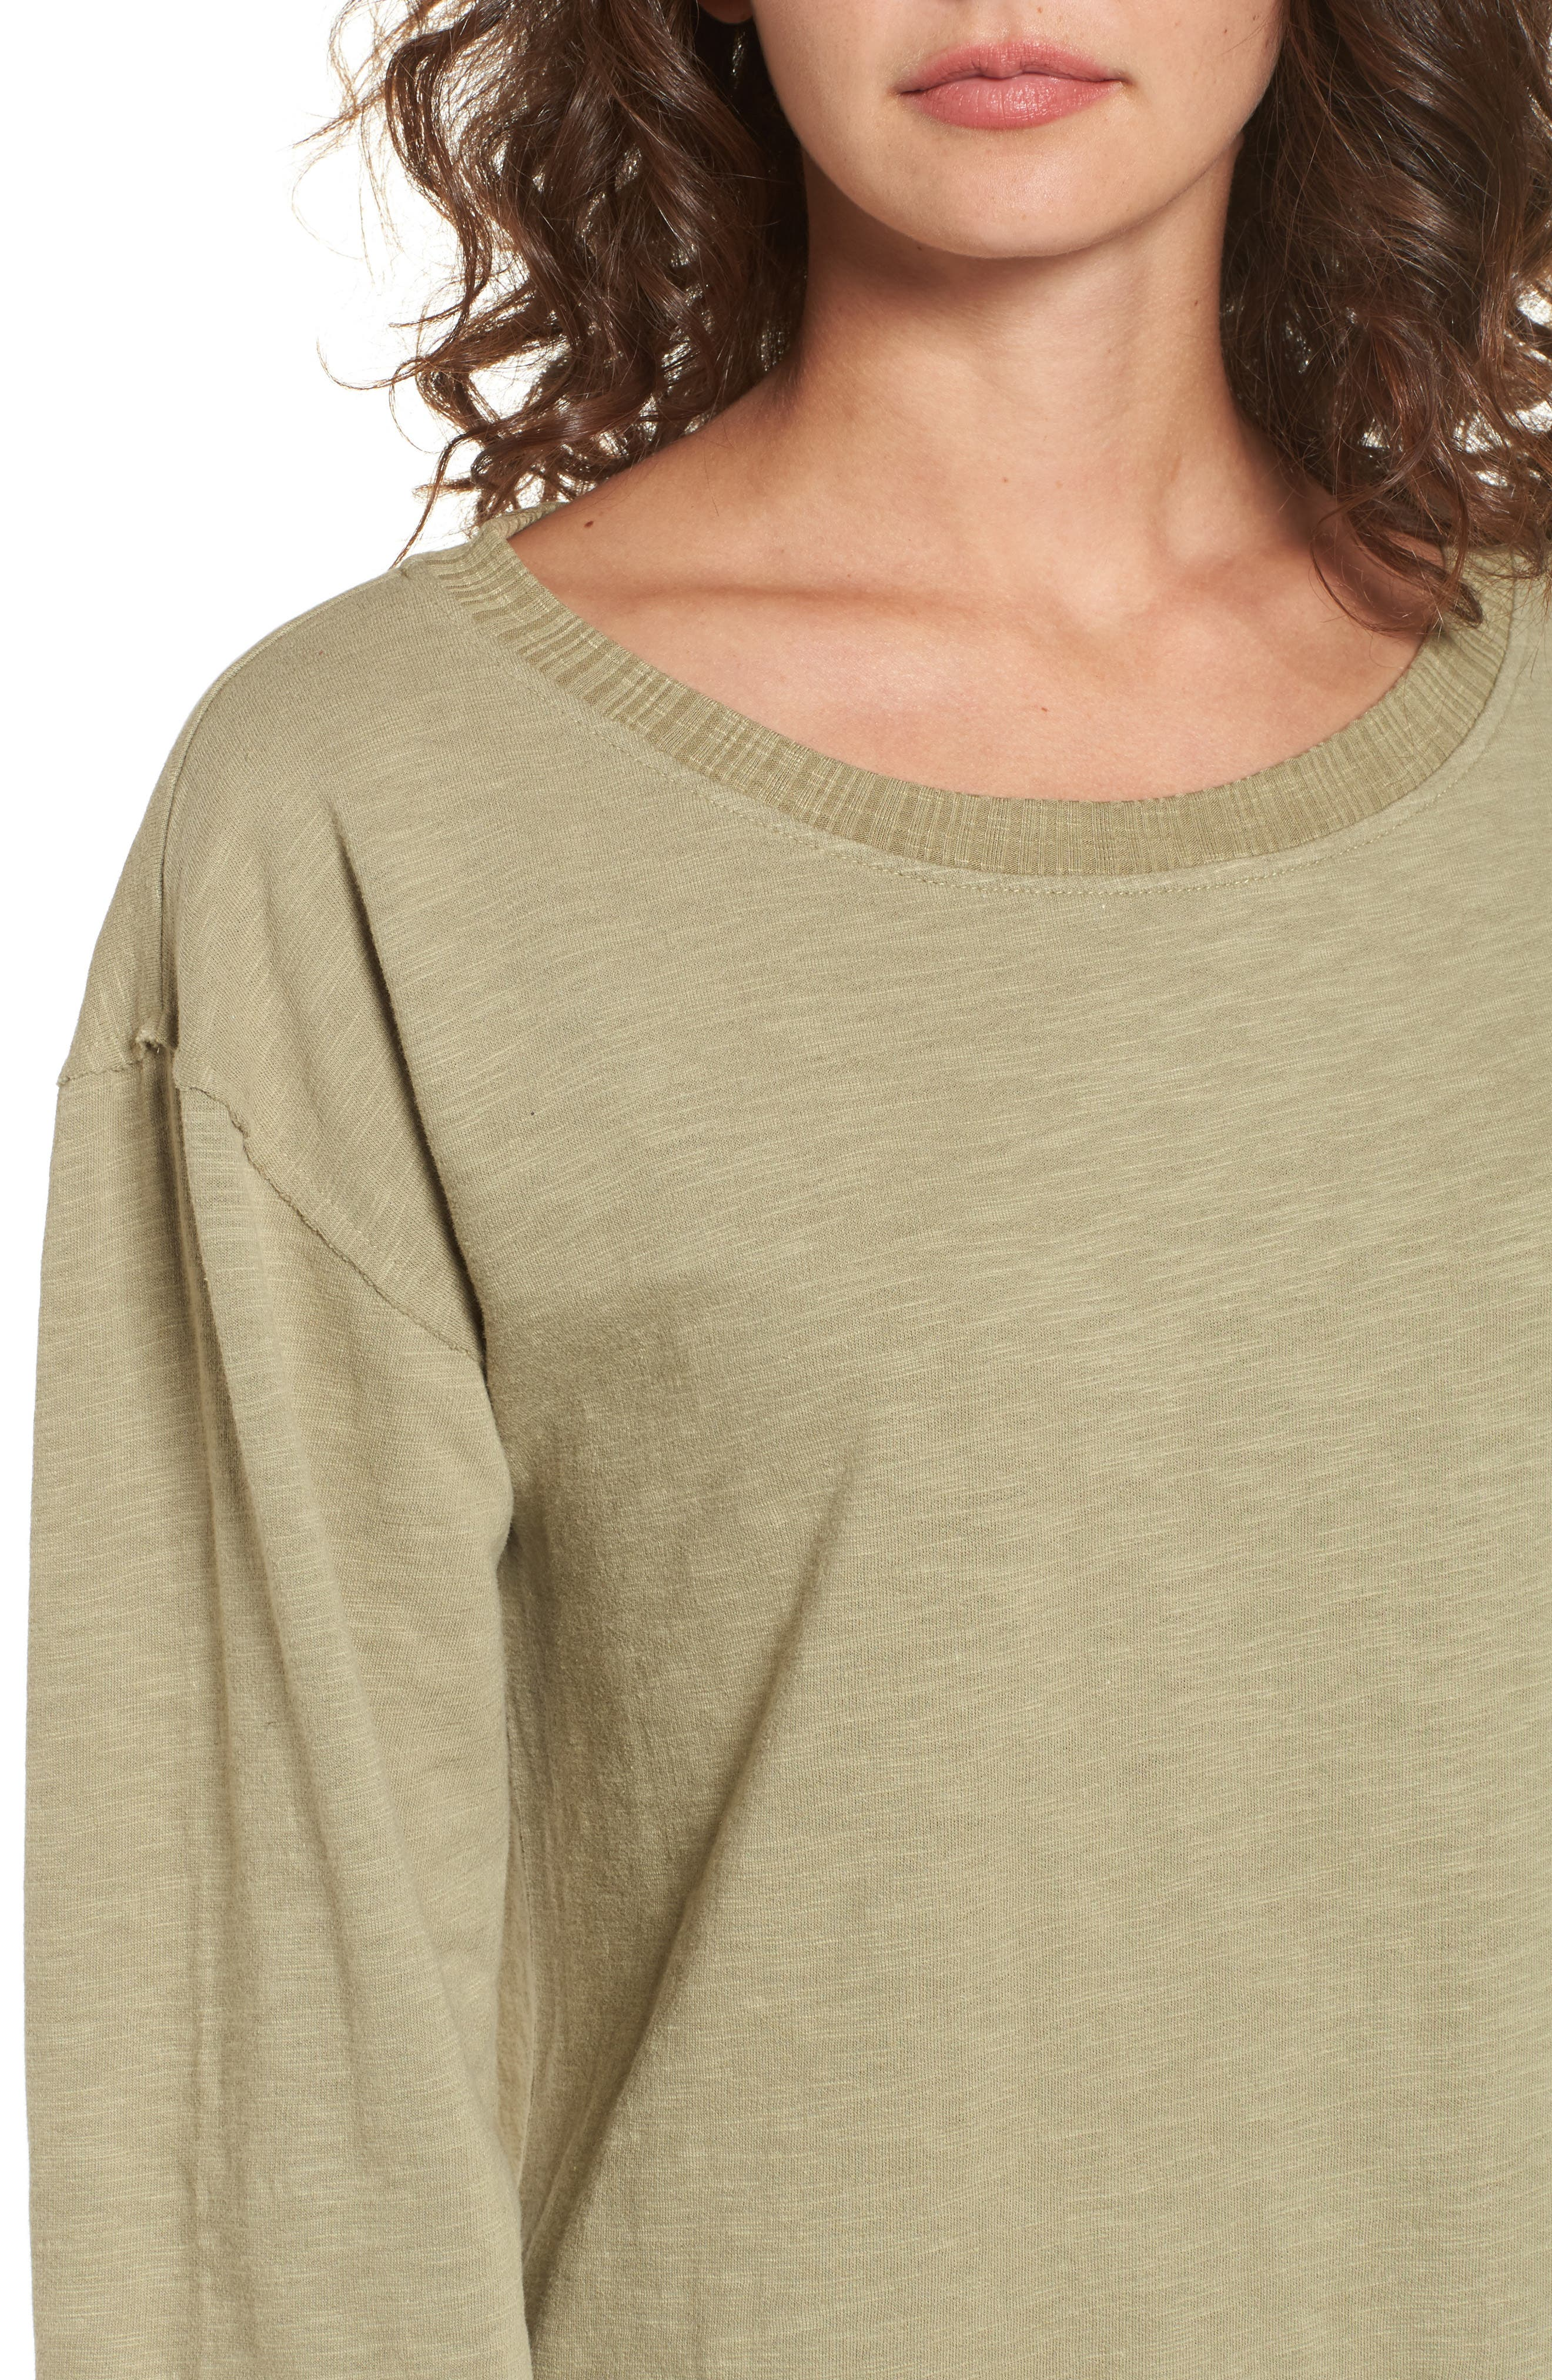 Mountains Fade Sweatshirt Dress,                             Alternate thumbnail 5, color,                             Sage